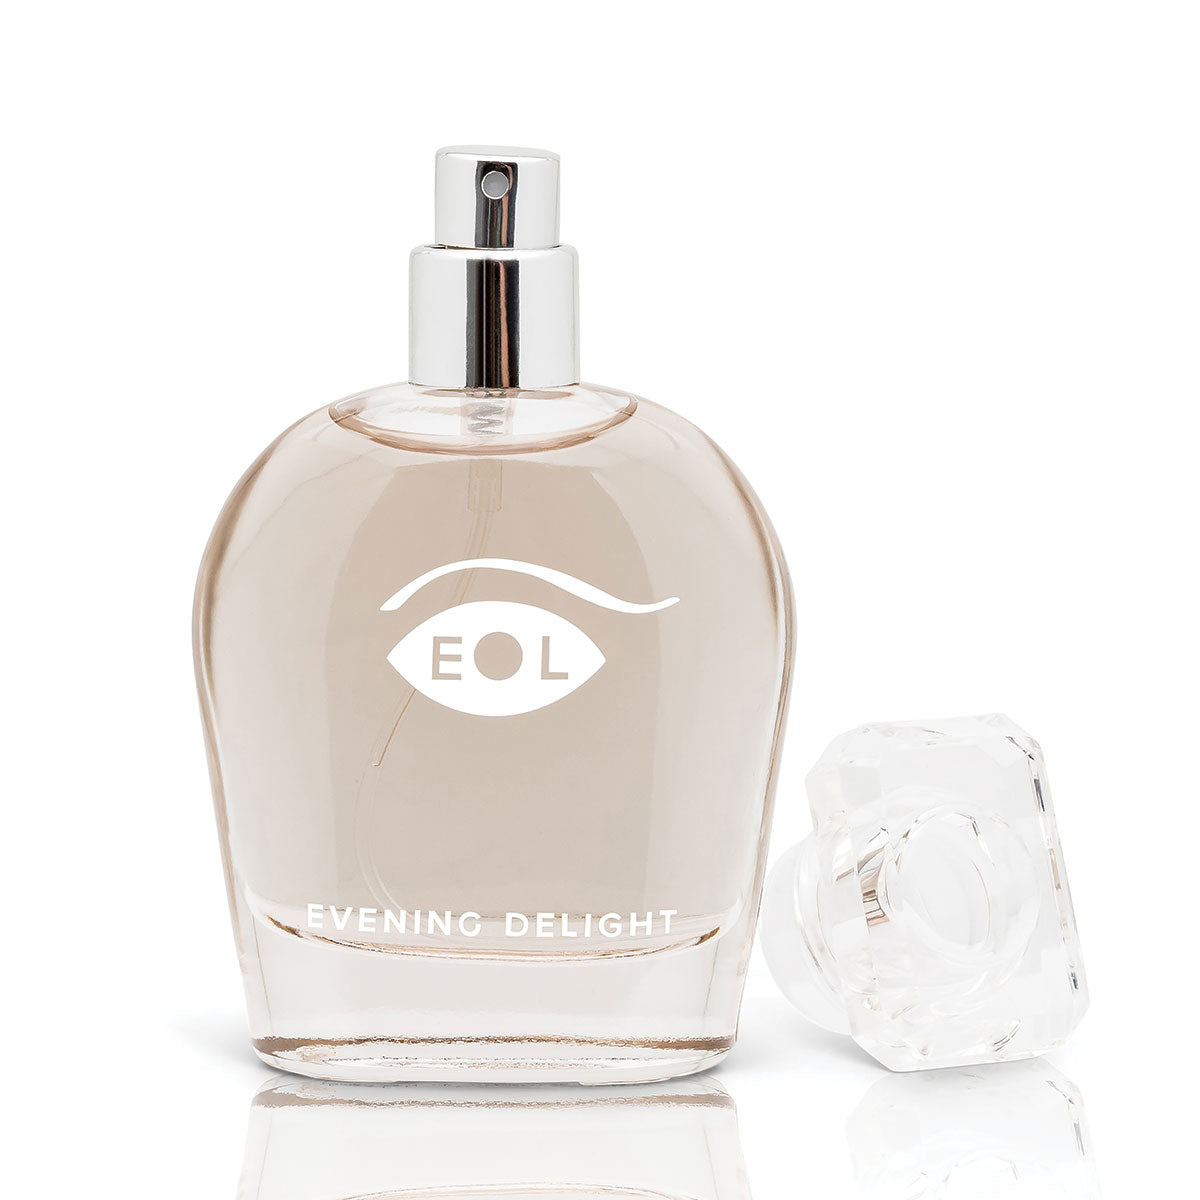 Evening Delight Parfum